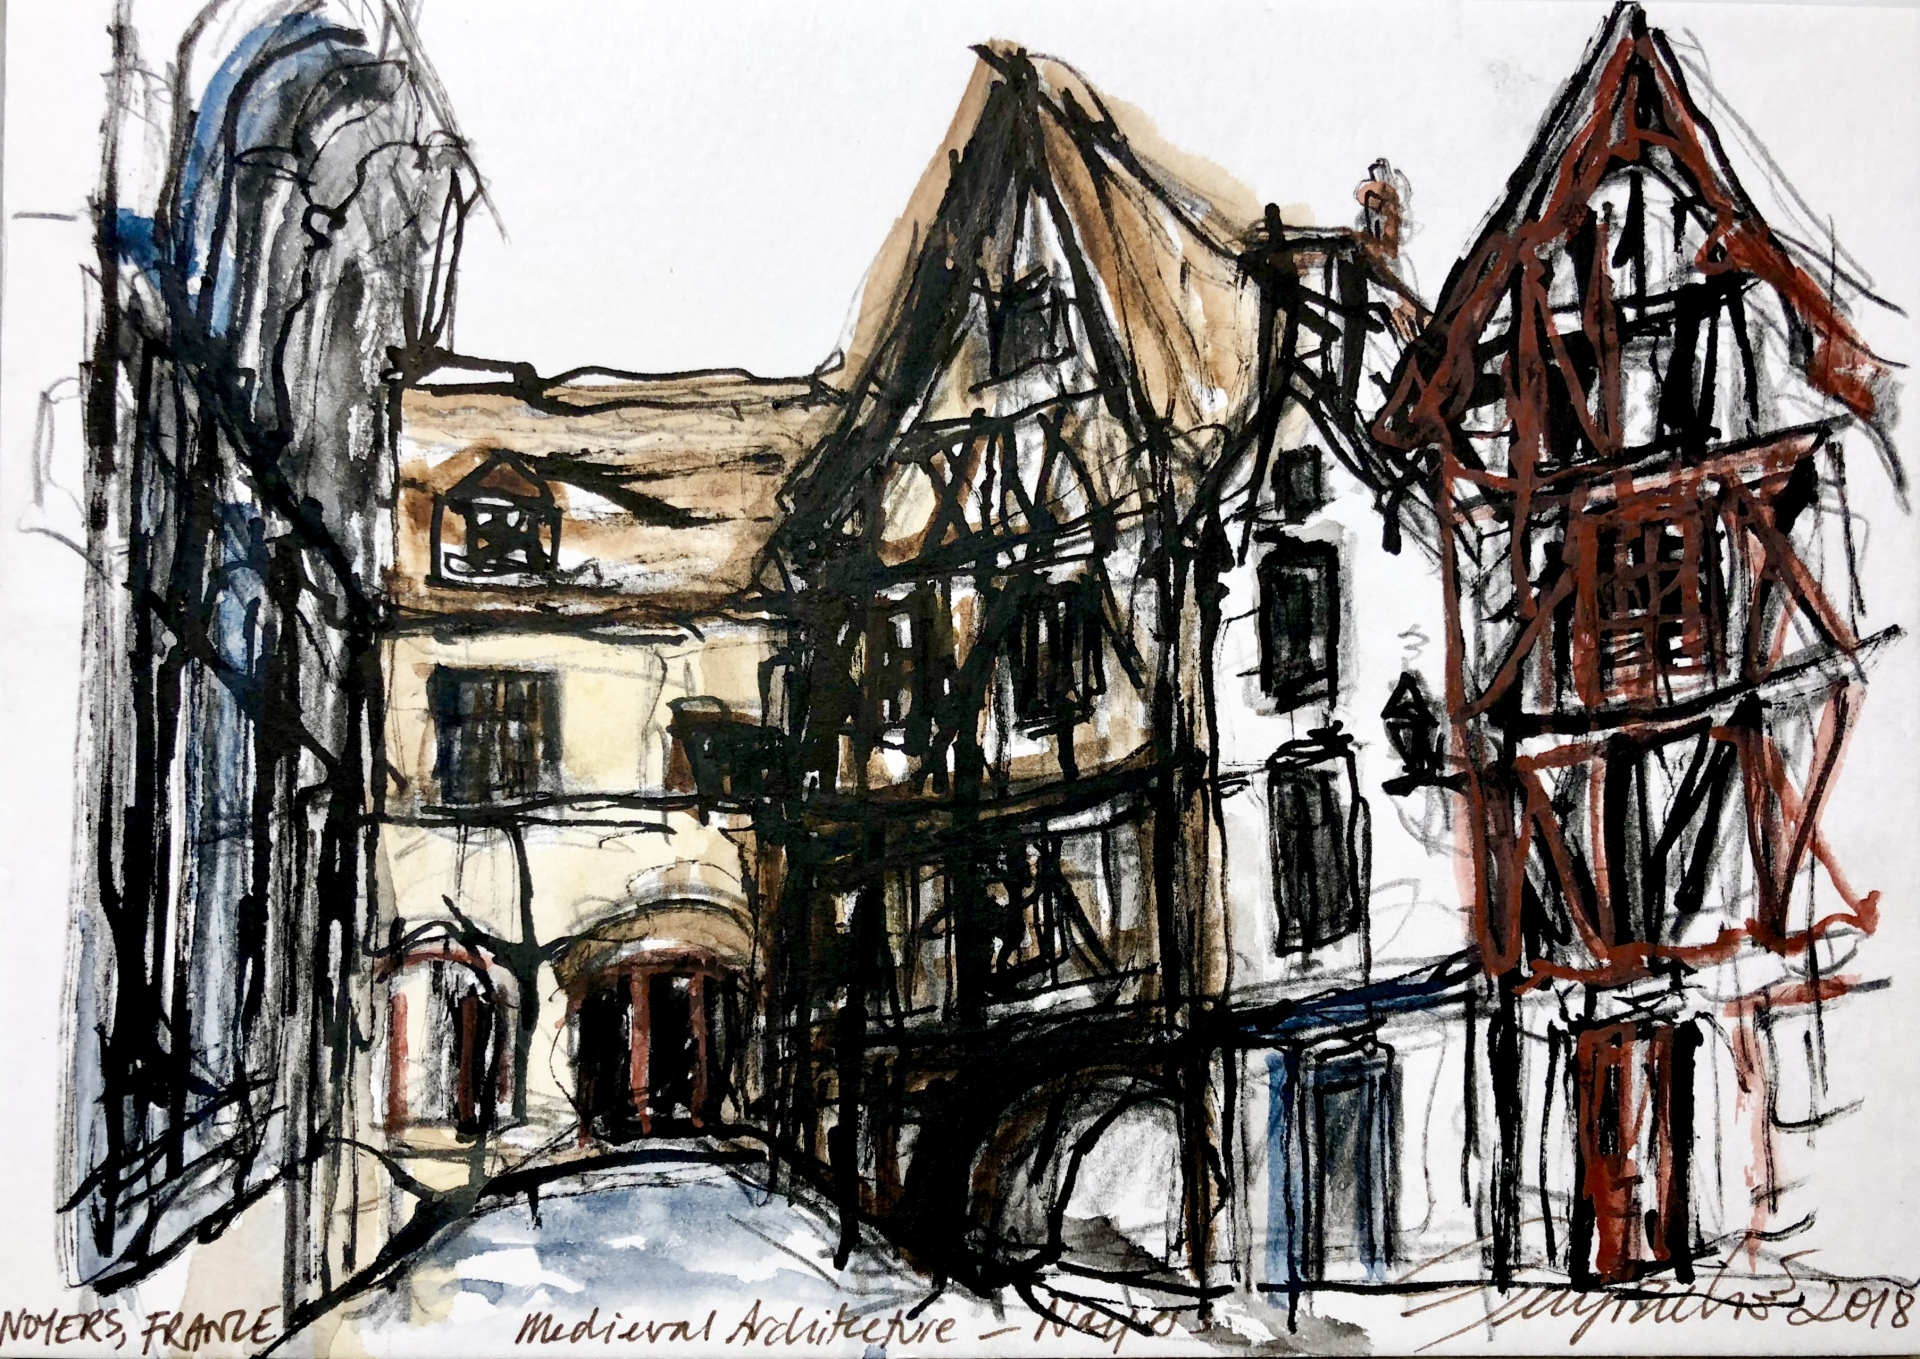 Medieval Architecture, Noyers (SOLD)